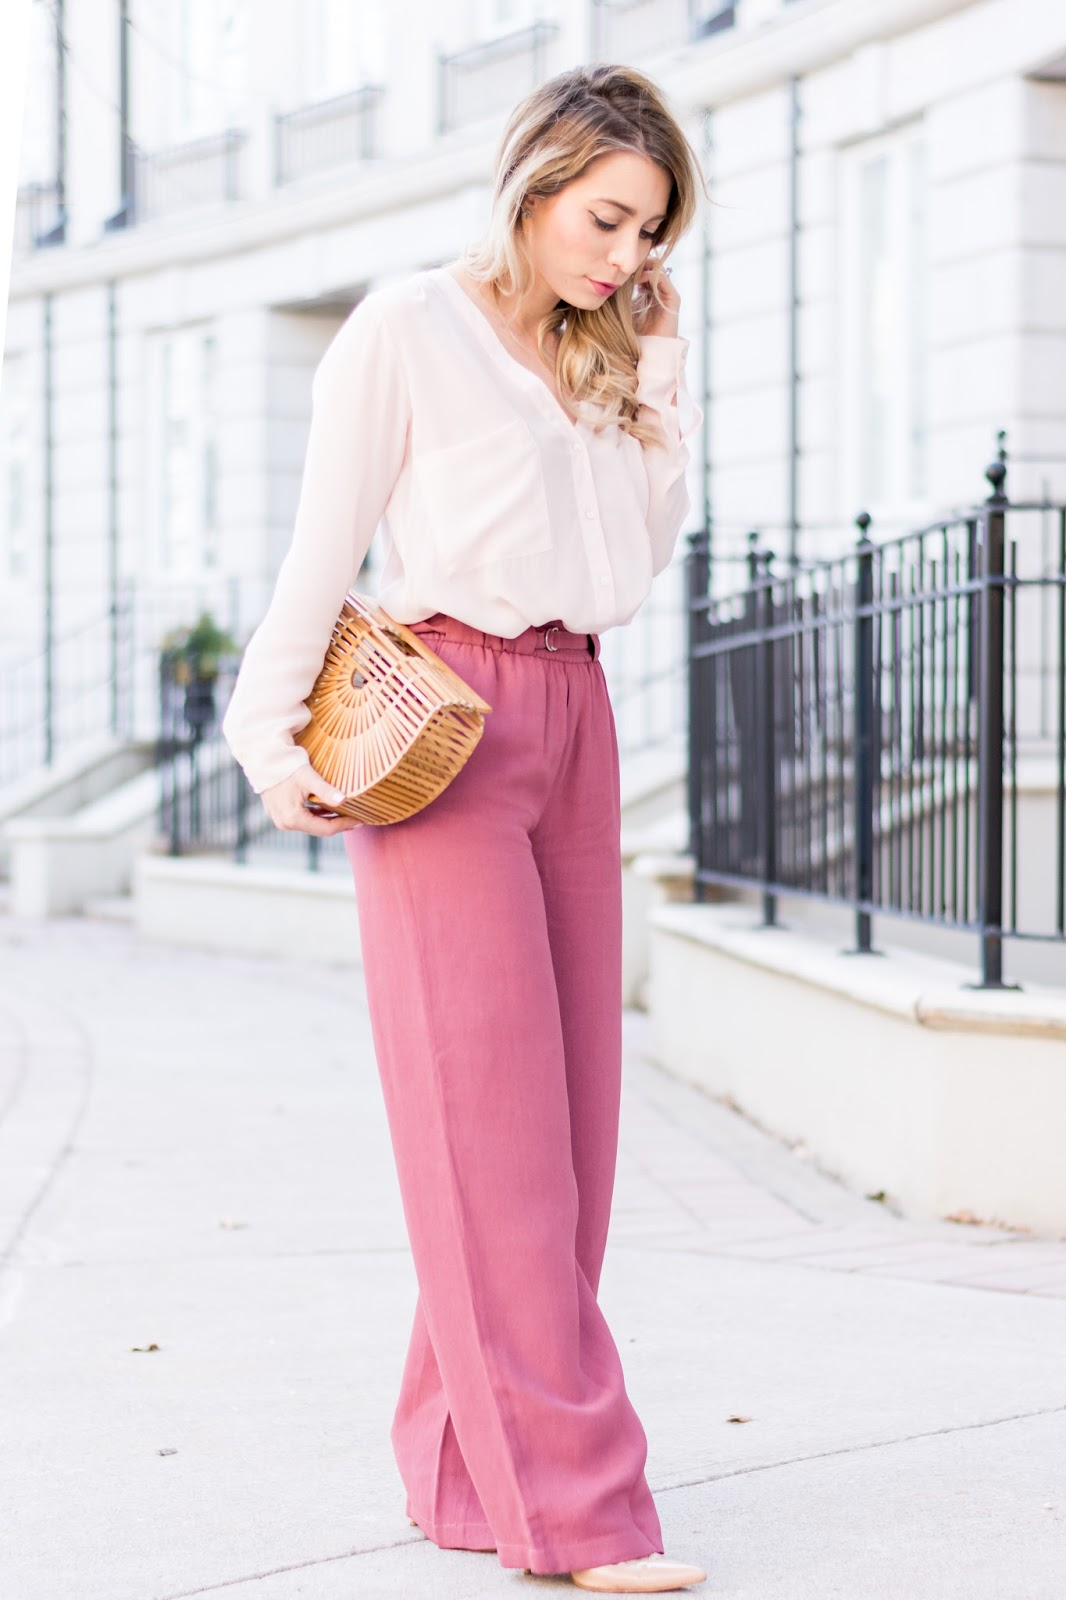 r-pink-magenta-wideleg-pants-white-top-blouse-tan-bag-howtowear-fashion-style-outfit-spring-summer-hairr-lunch.jpg